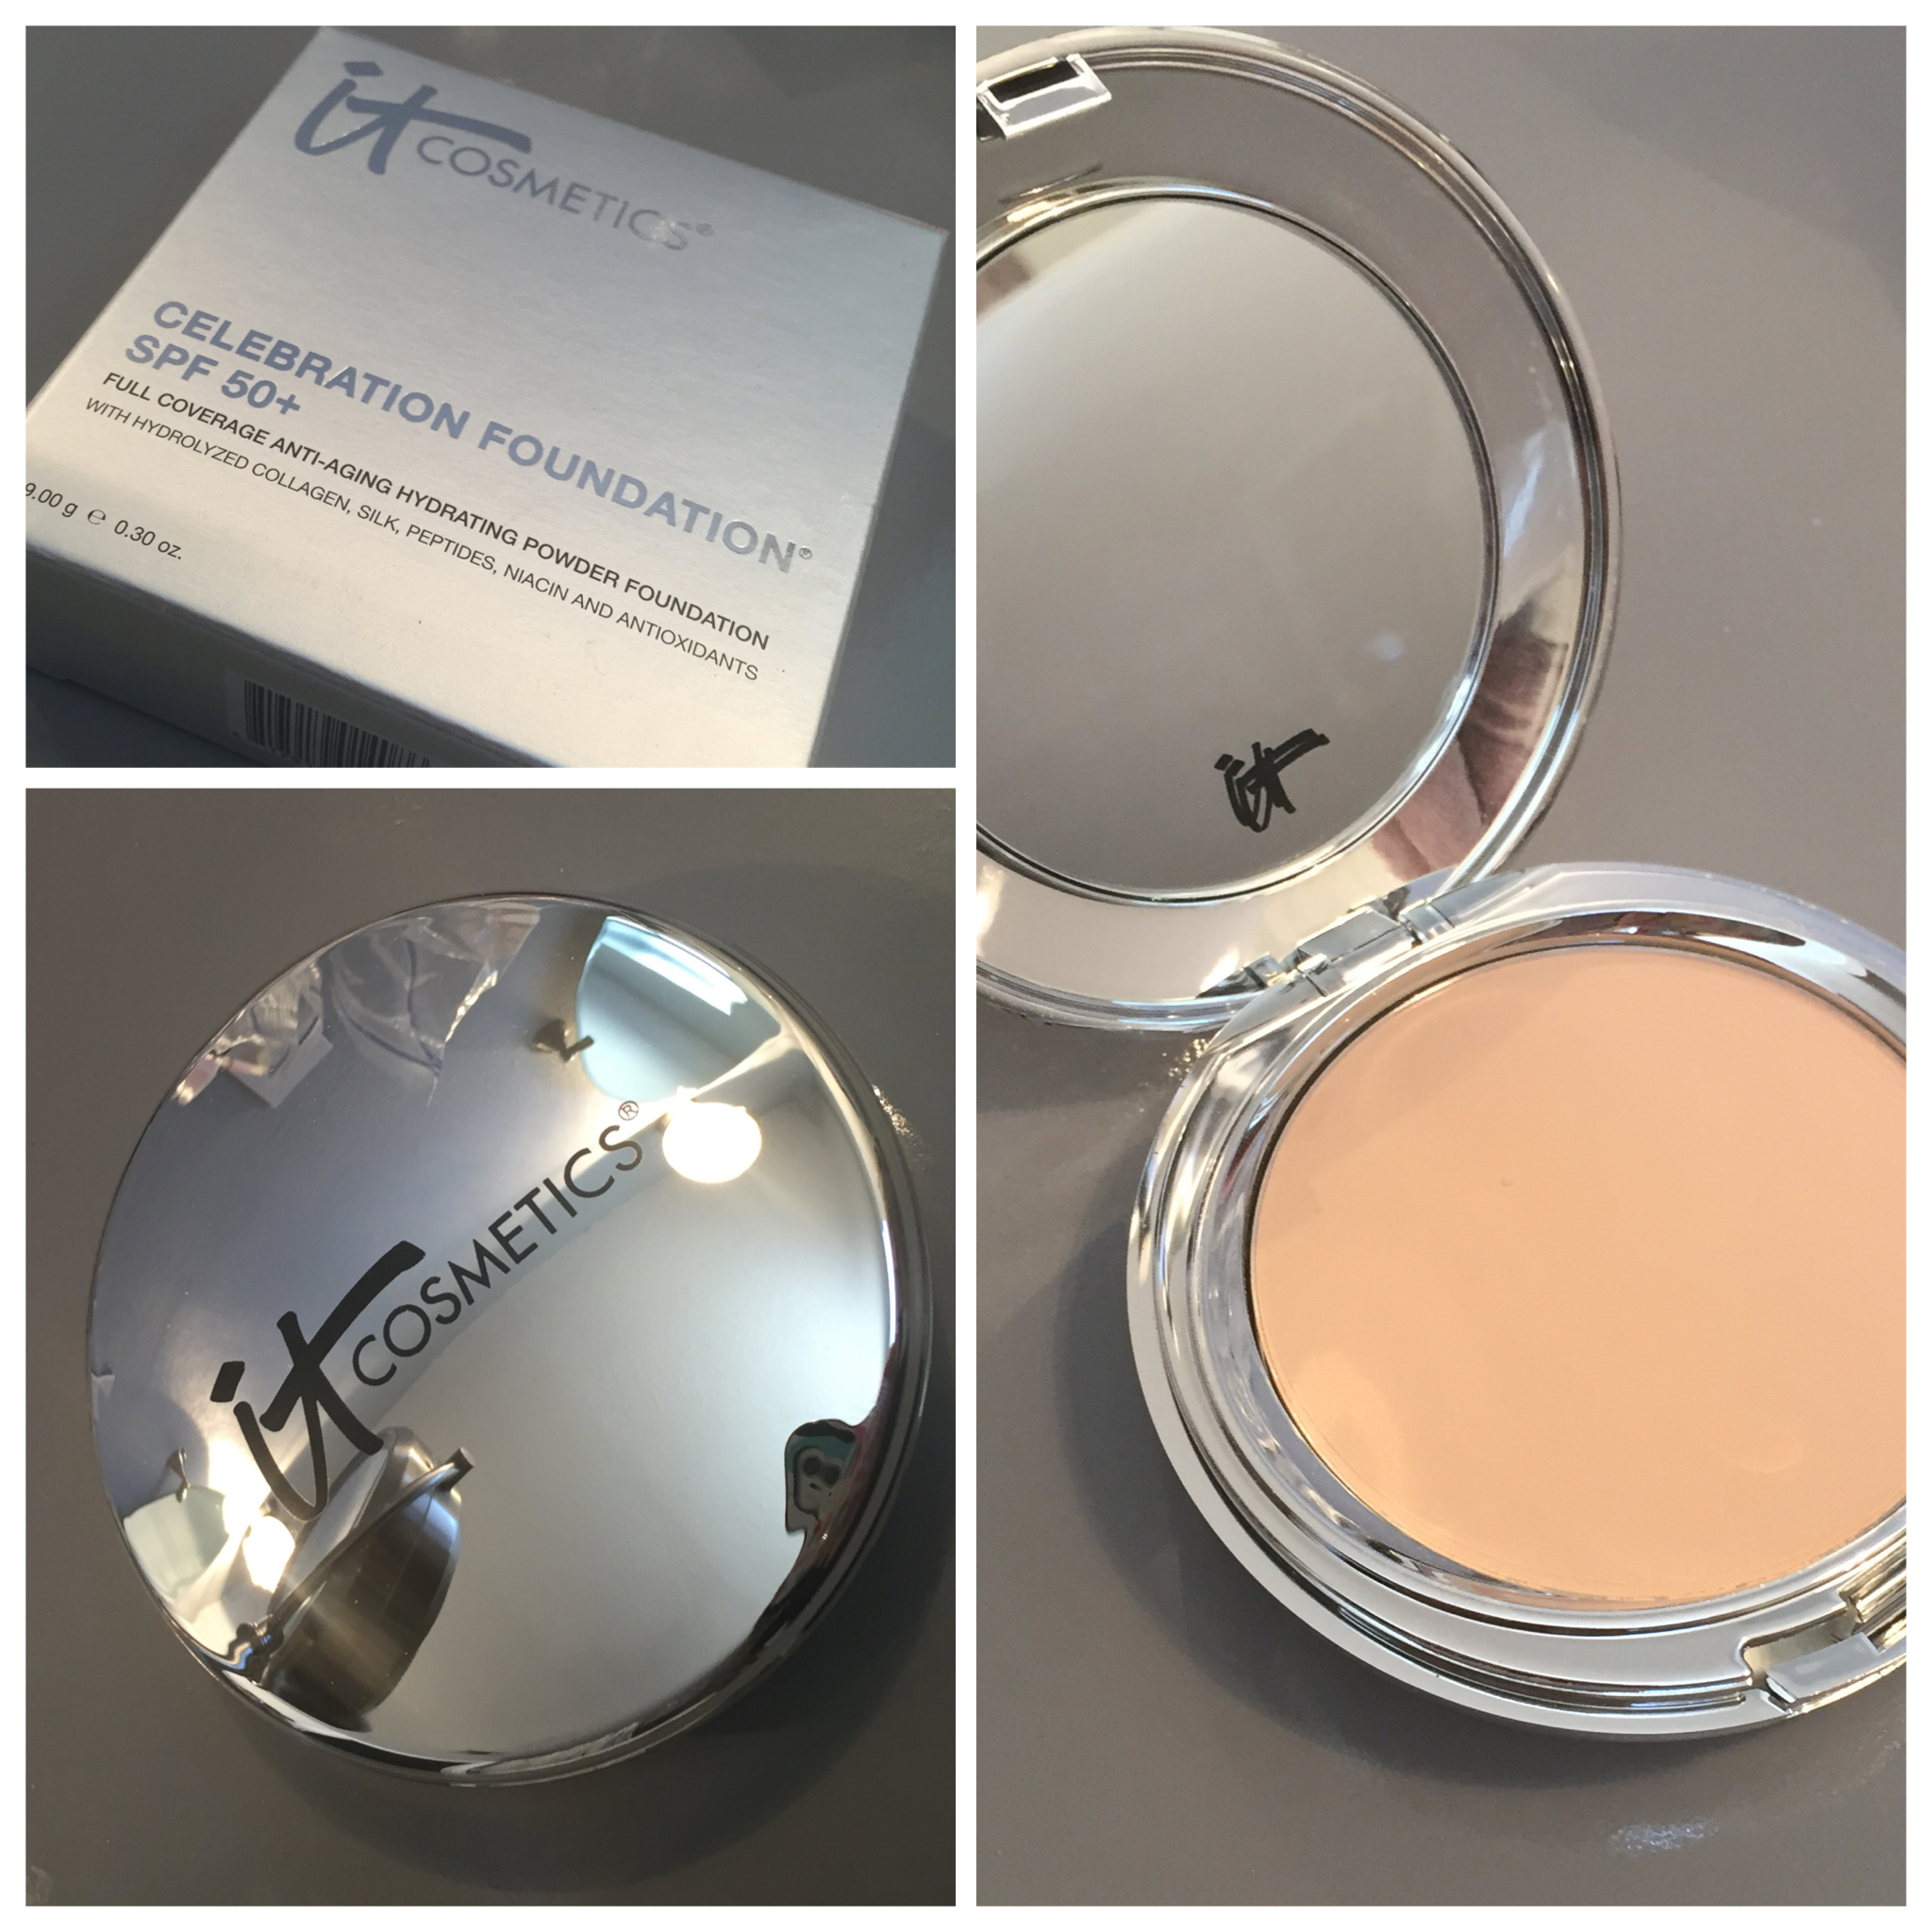 Itcosmetics Celebration Foundation Photos And Review Bbloggers You Can Have It All